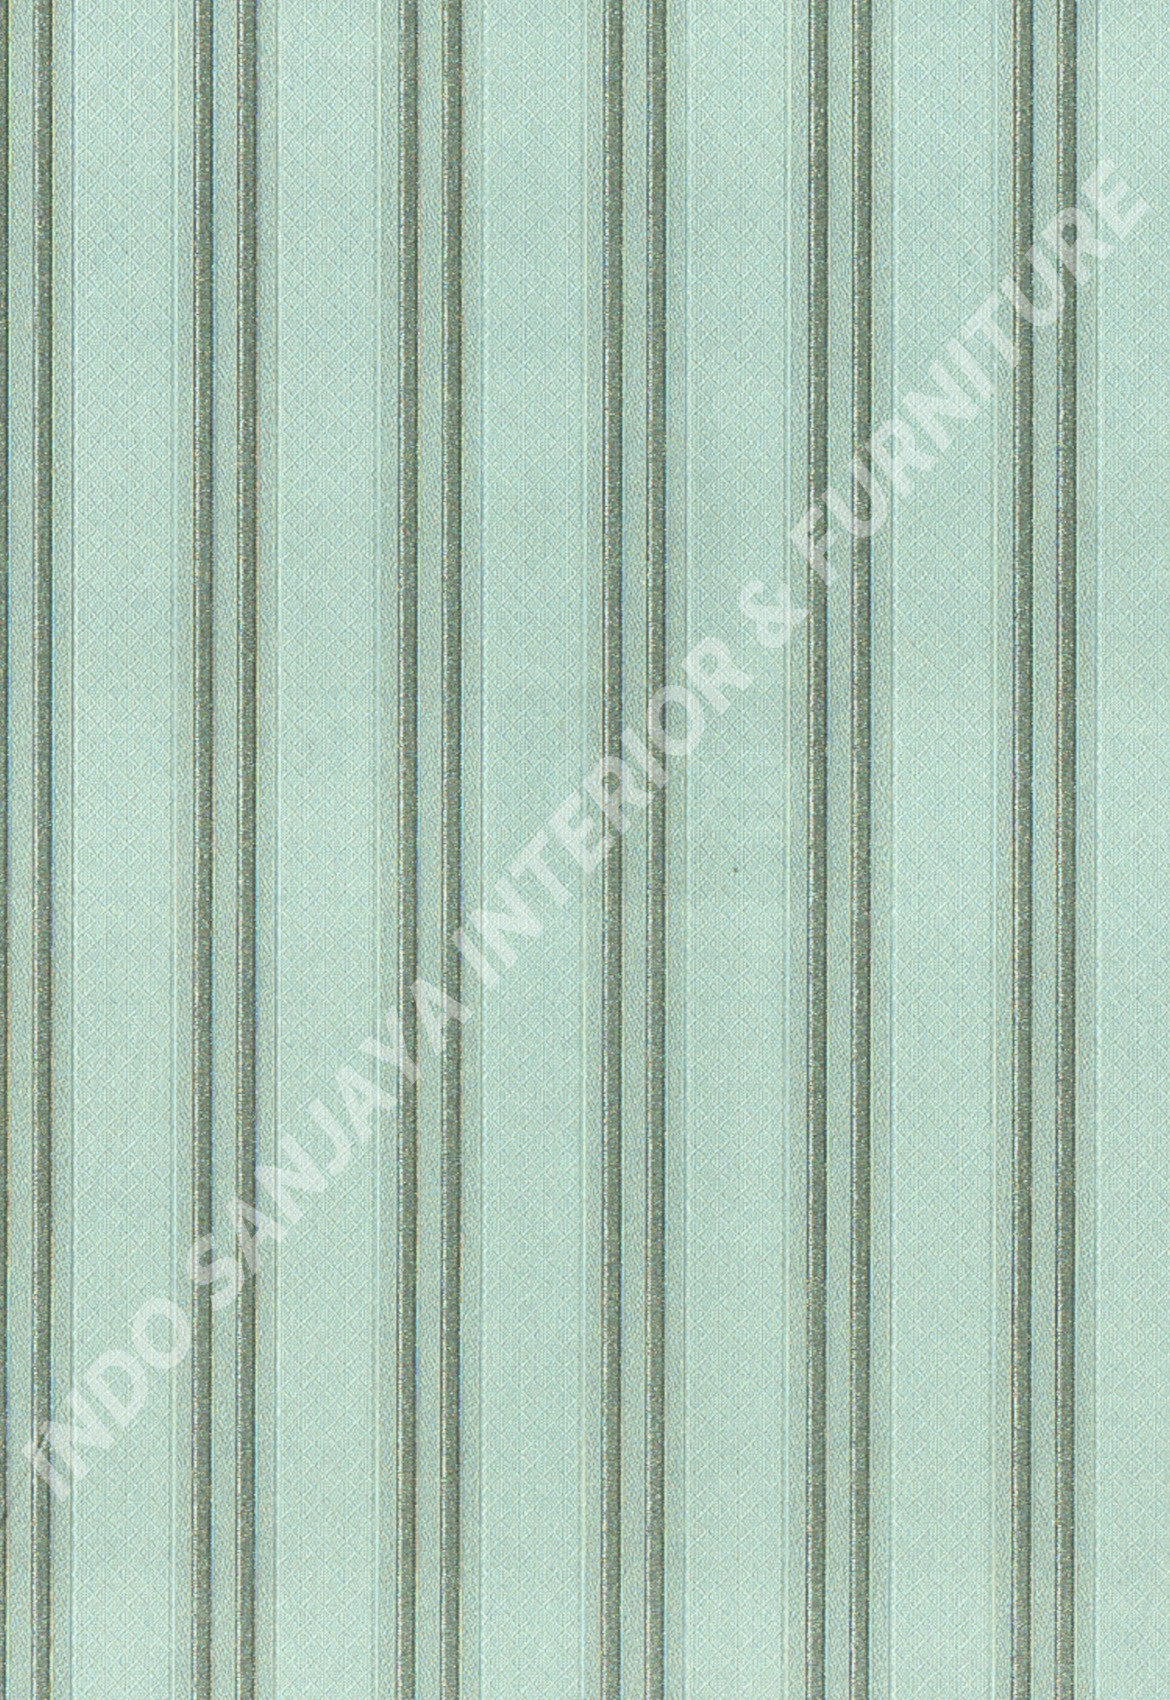 wallpaper   Wallpaper Garis E10505:E10505 corak  warna